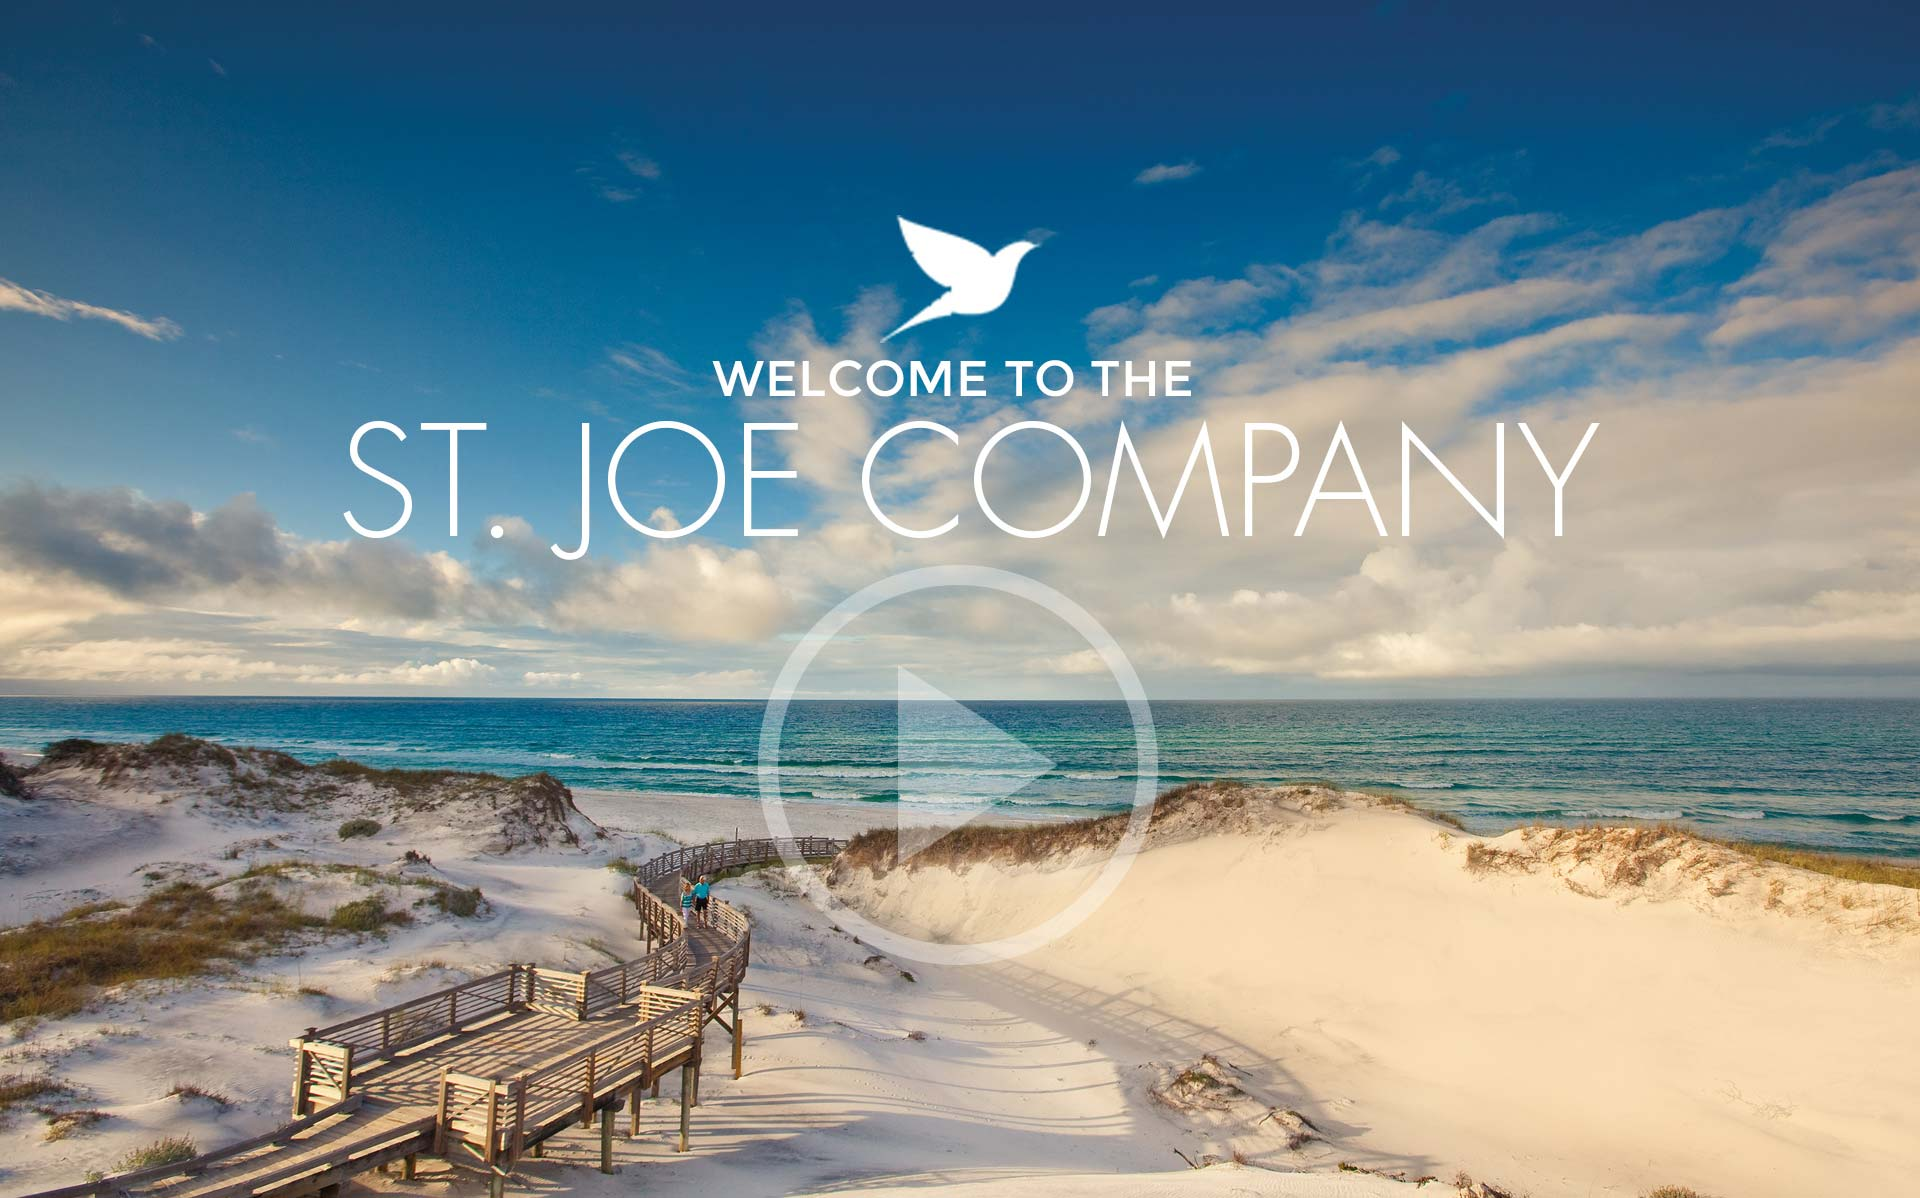 Florida Real Estate Land Homes And Commercial Property For The St Joe Company